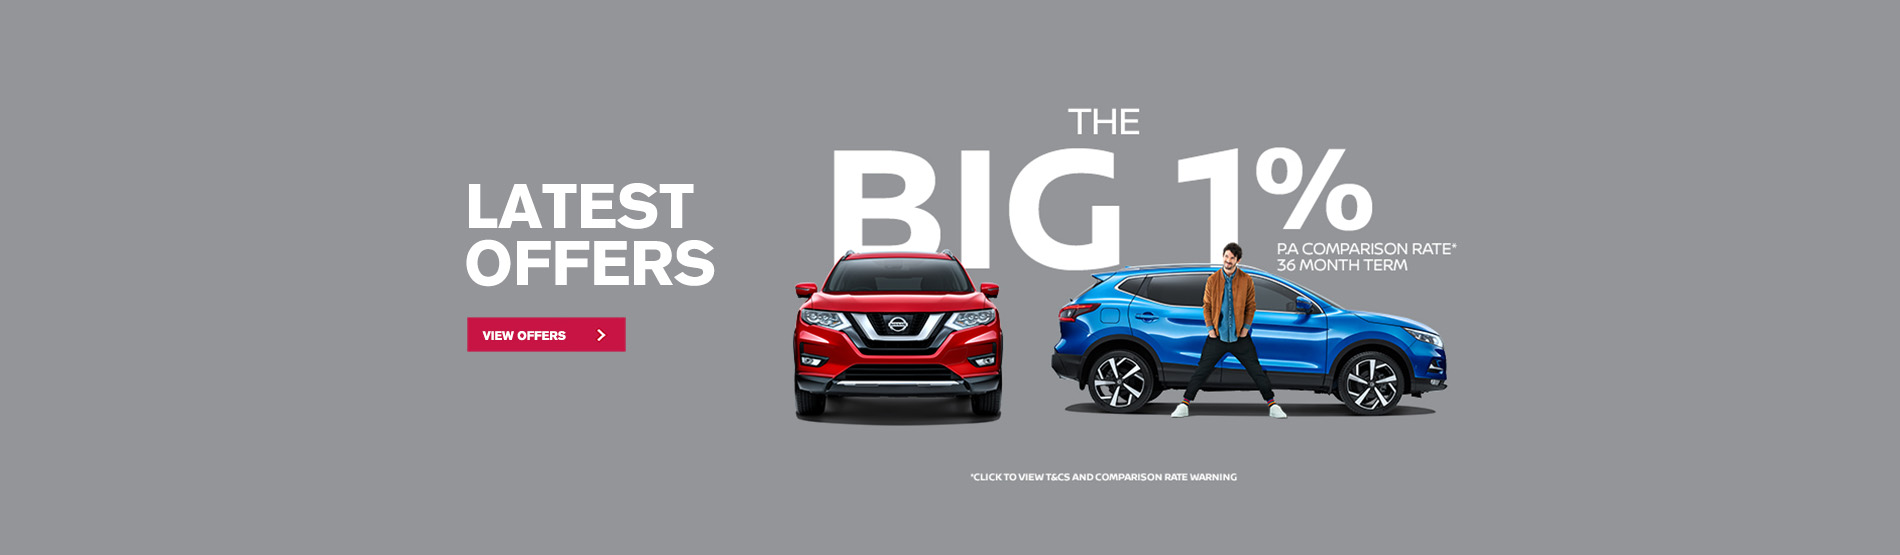 Nissan - The Big 1%